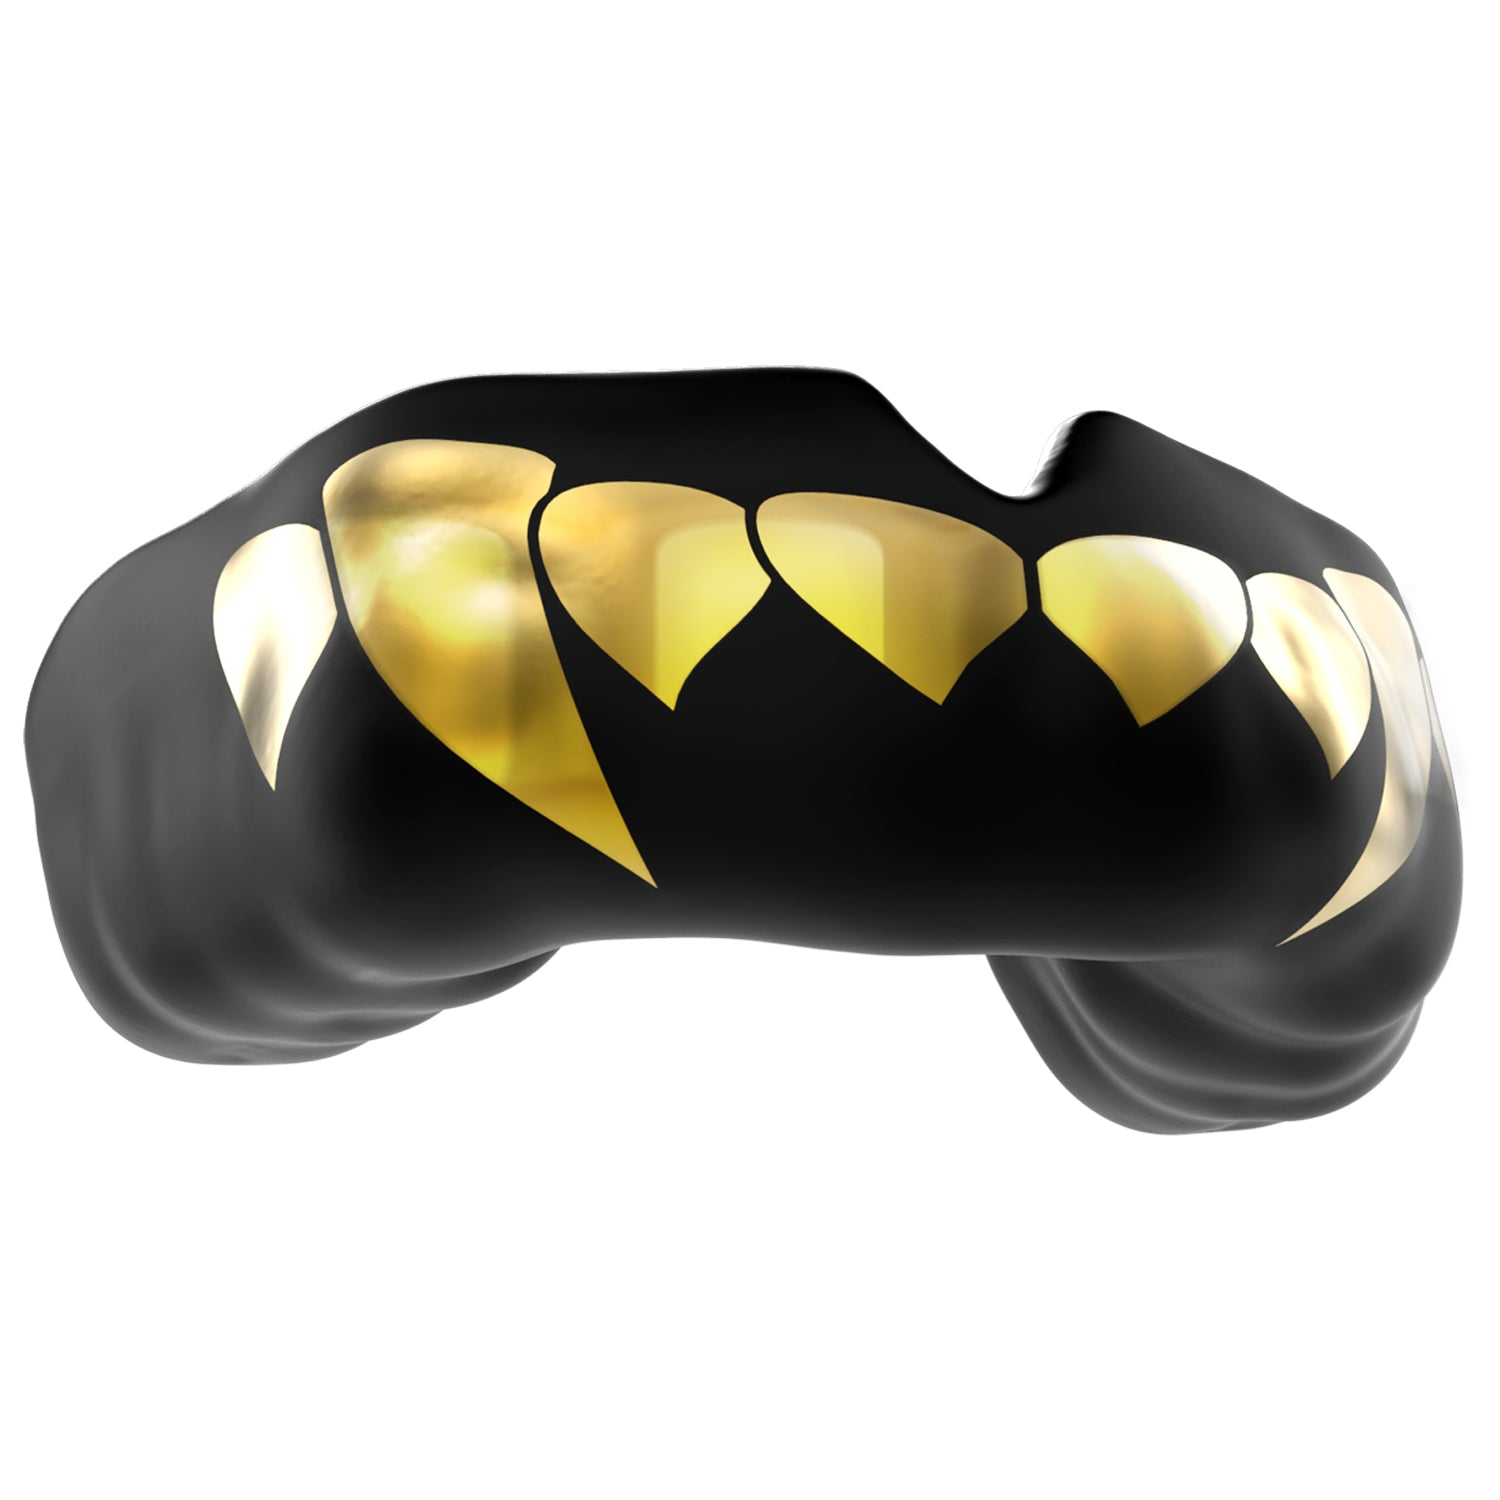 SAFEJAWZ® Popular Design Custom-fit Mouthguard - Gold Fangz